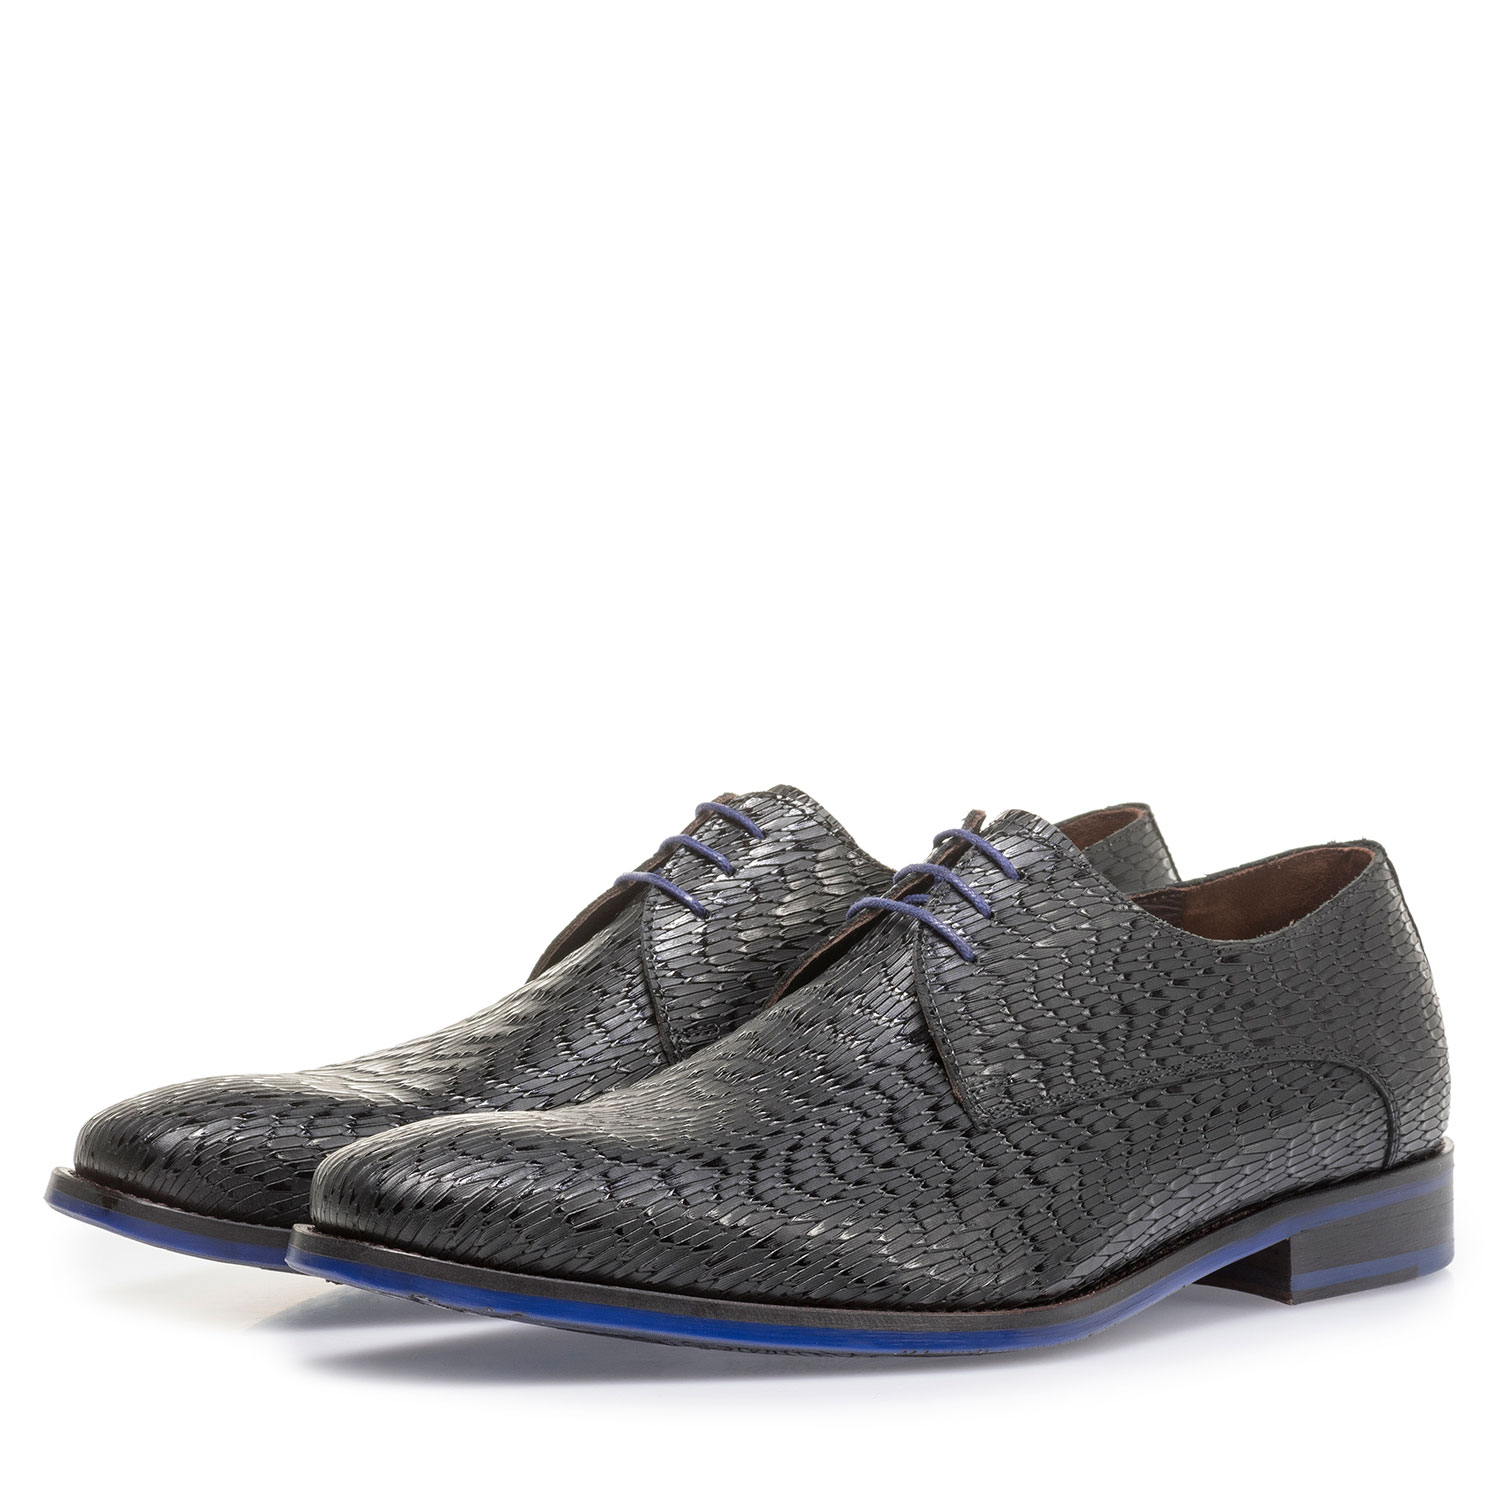 18159/22 - Black leather lace shoe with print